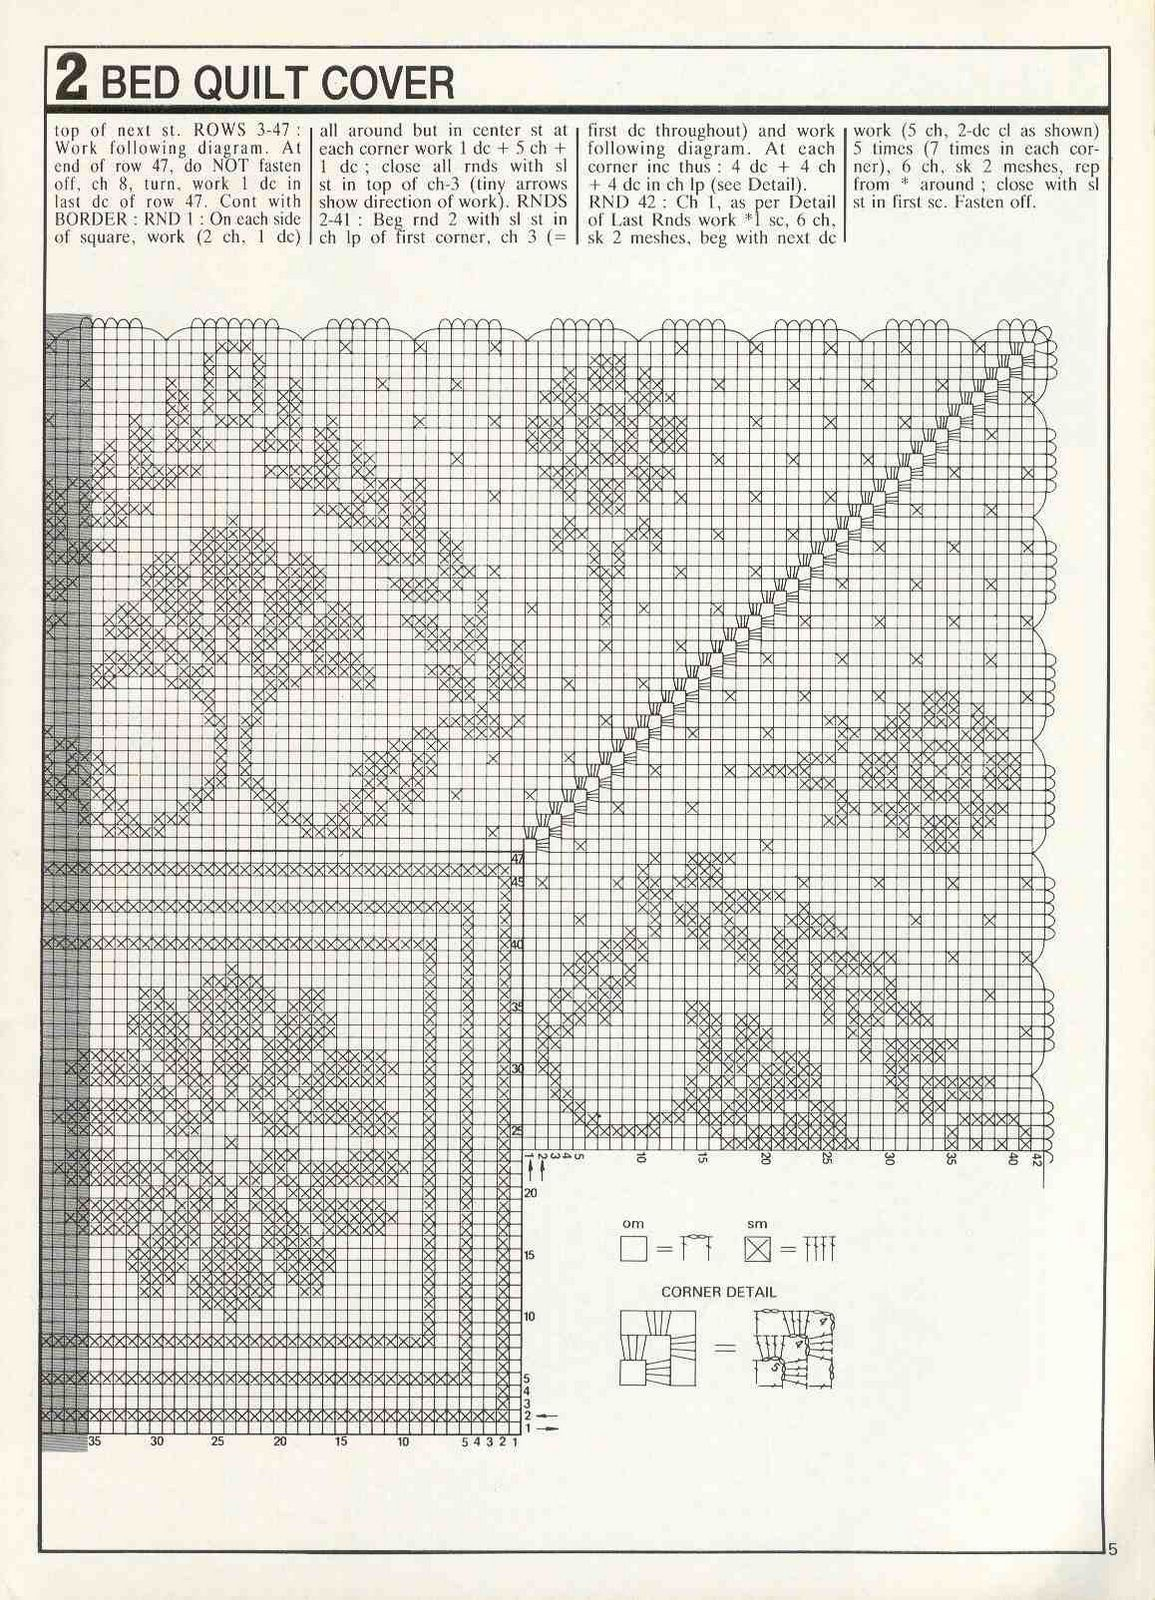 Pin By Susan Westall On Crochet Pinterest Fillet Oval Doily Diagram Tablecloth Doilies Filet Charts Knitting Patterns Bed Spreads Crocheting White Bedspreads